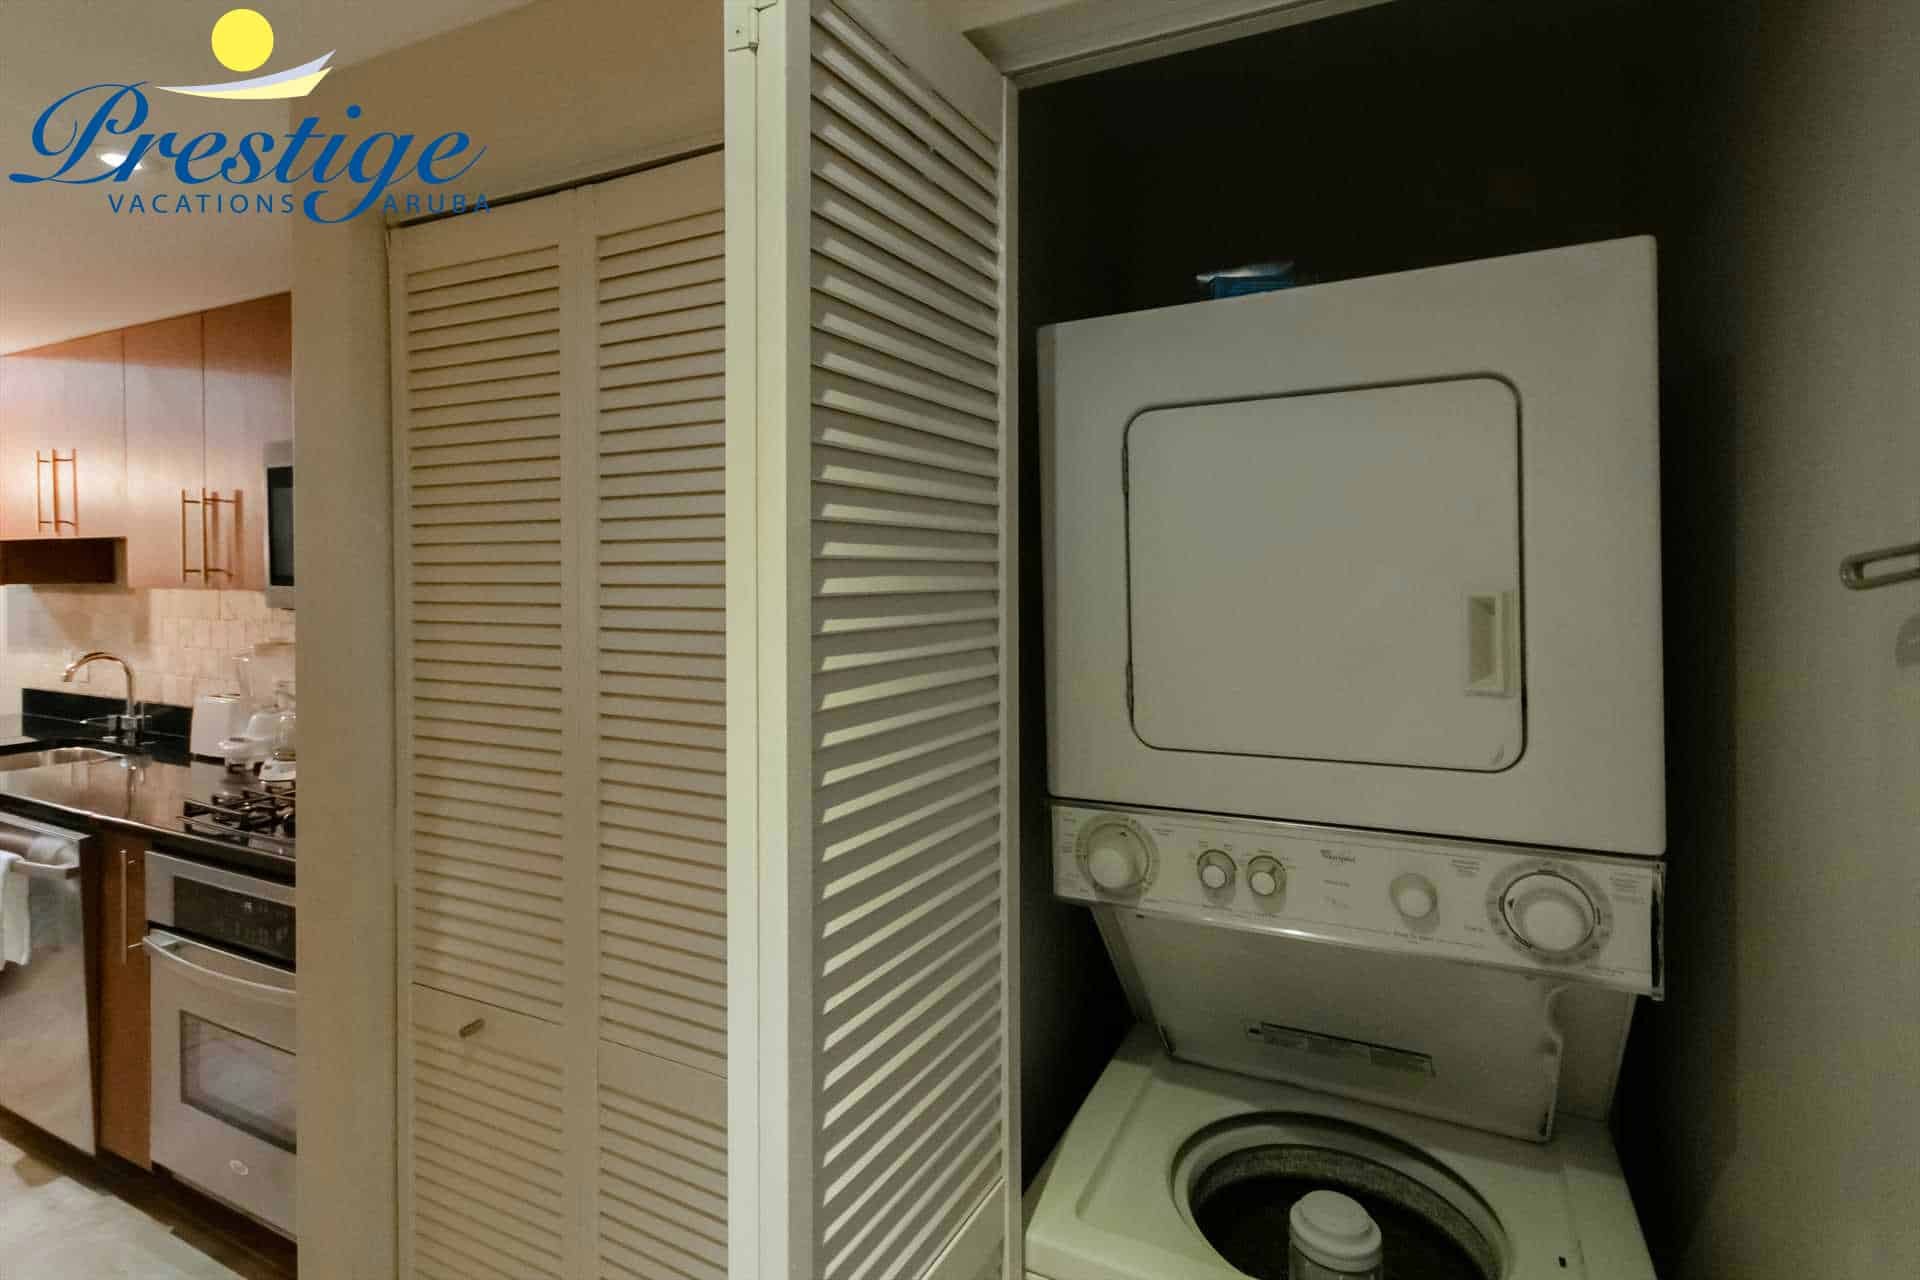 The in-room washer/dryer closet at the entrance of the studio condo